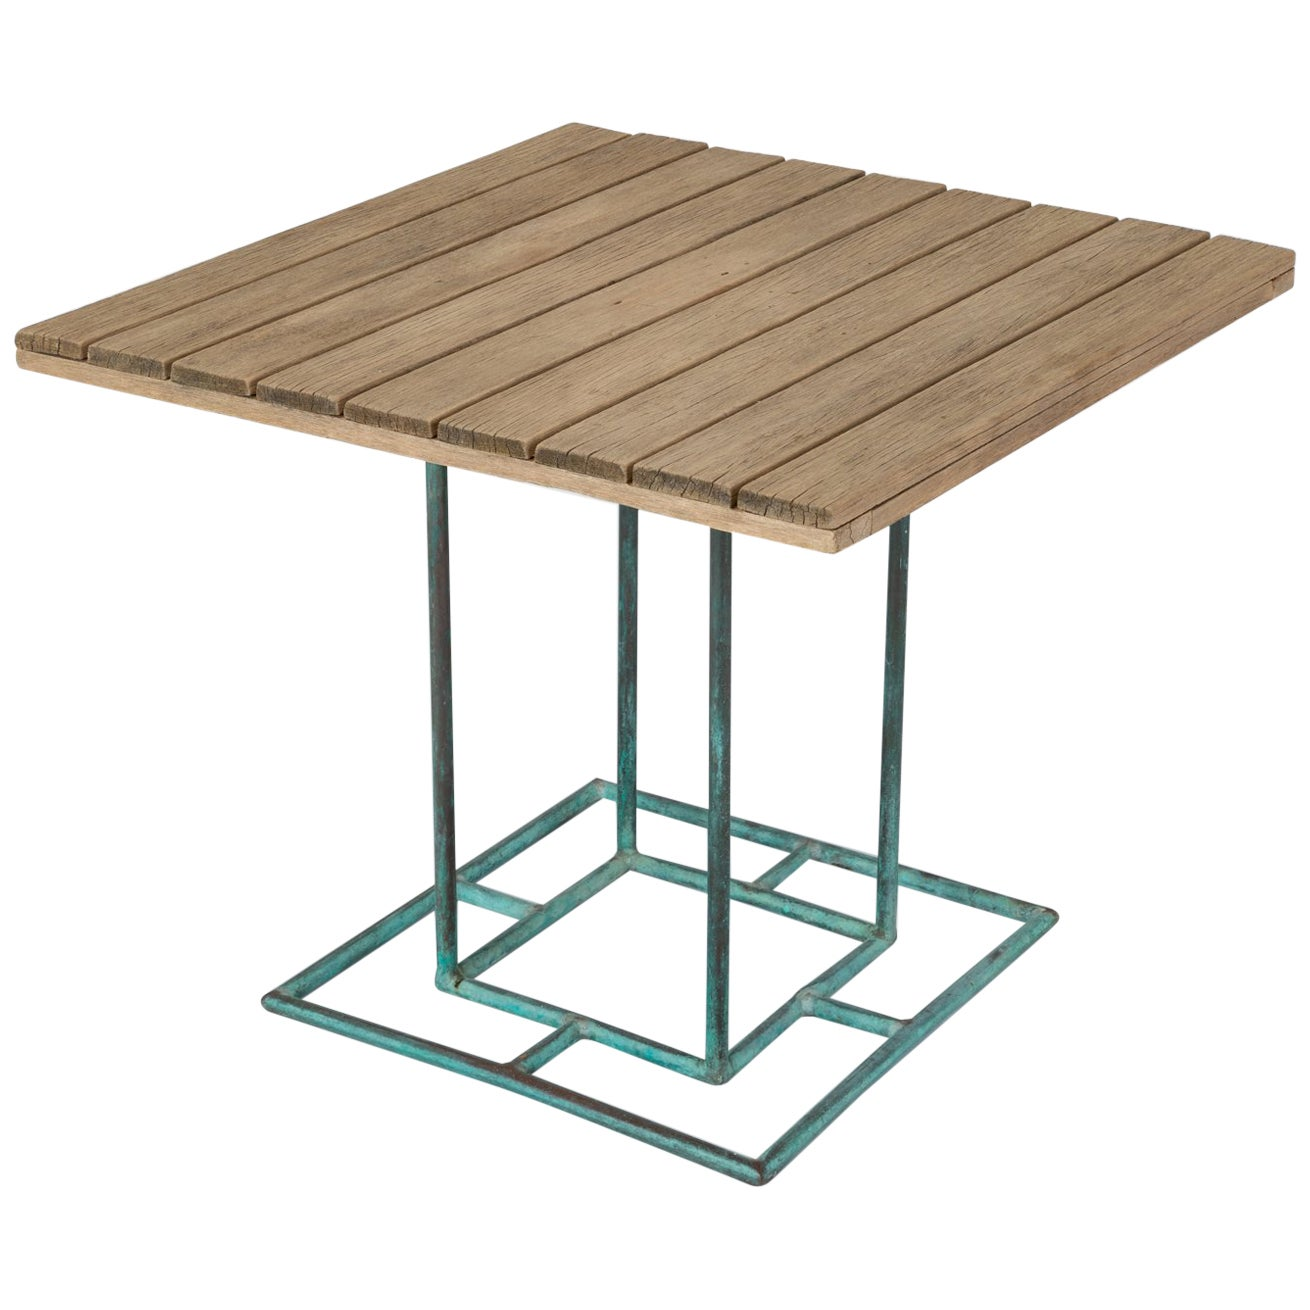 Bronze Patio Dining Table with Square Wooden Top by Walter Lamb for Brown Jordan